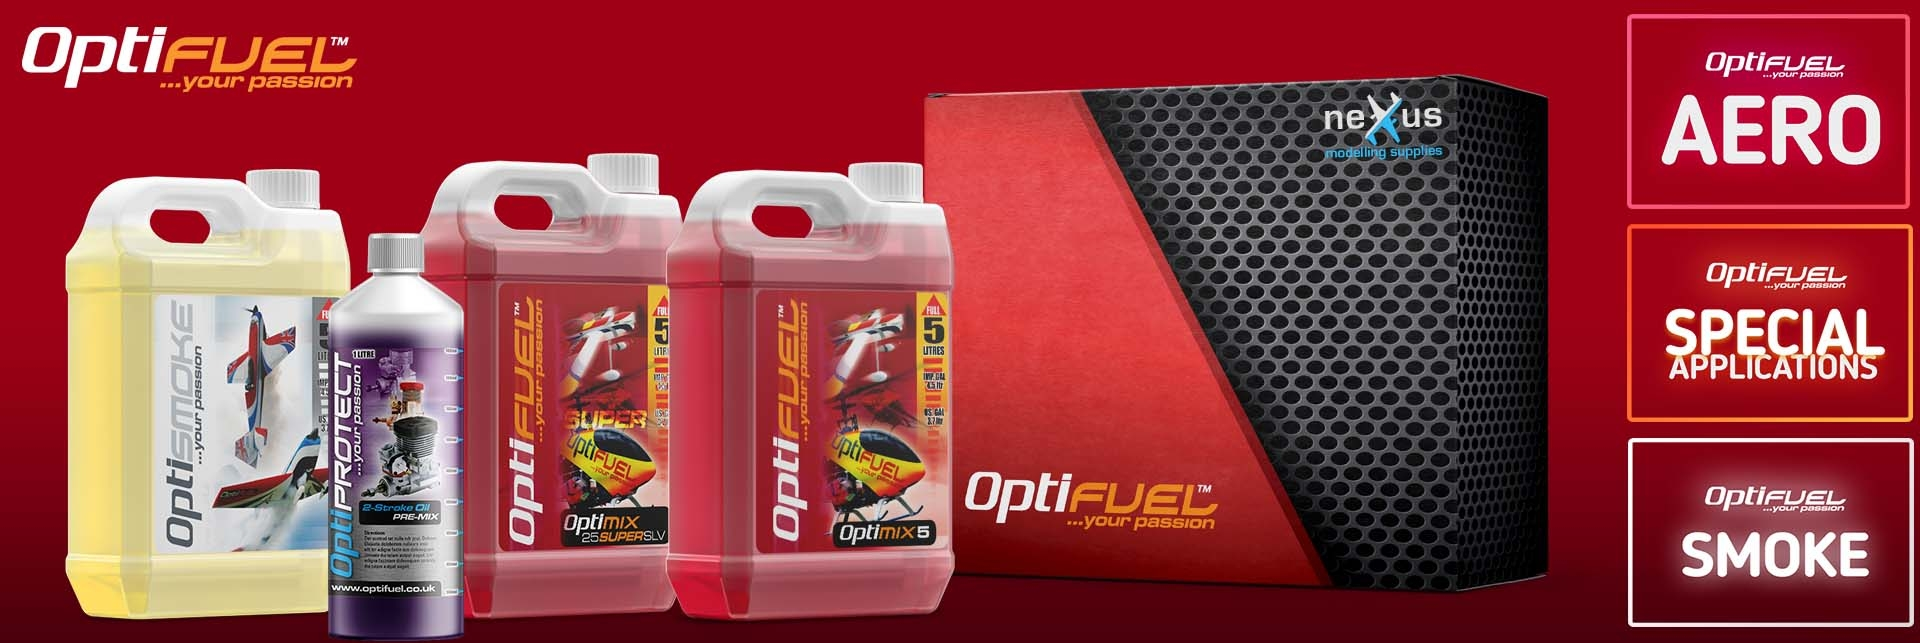 Optifuel